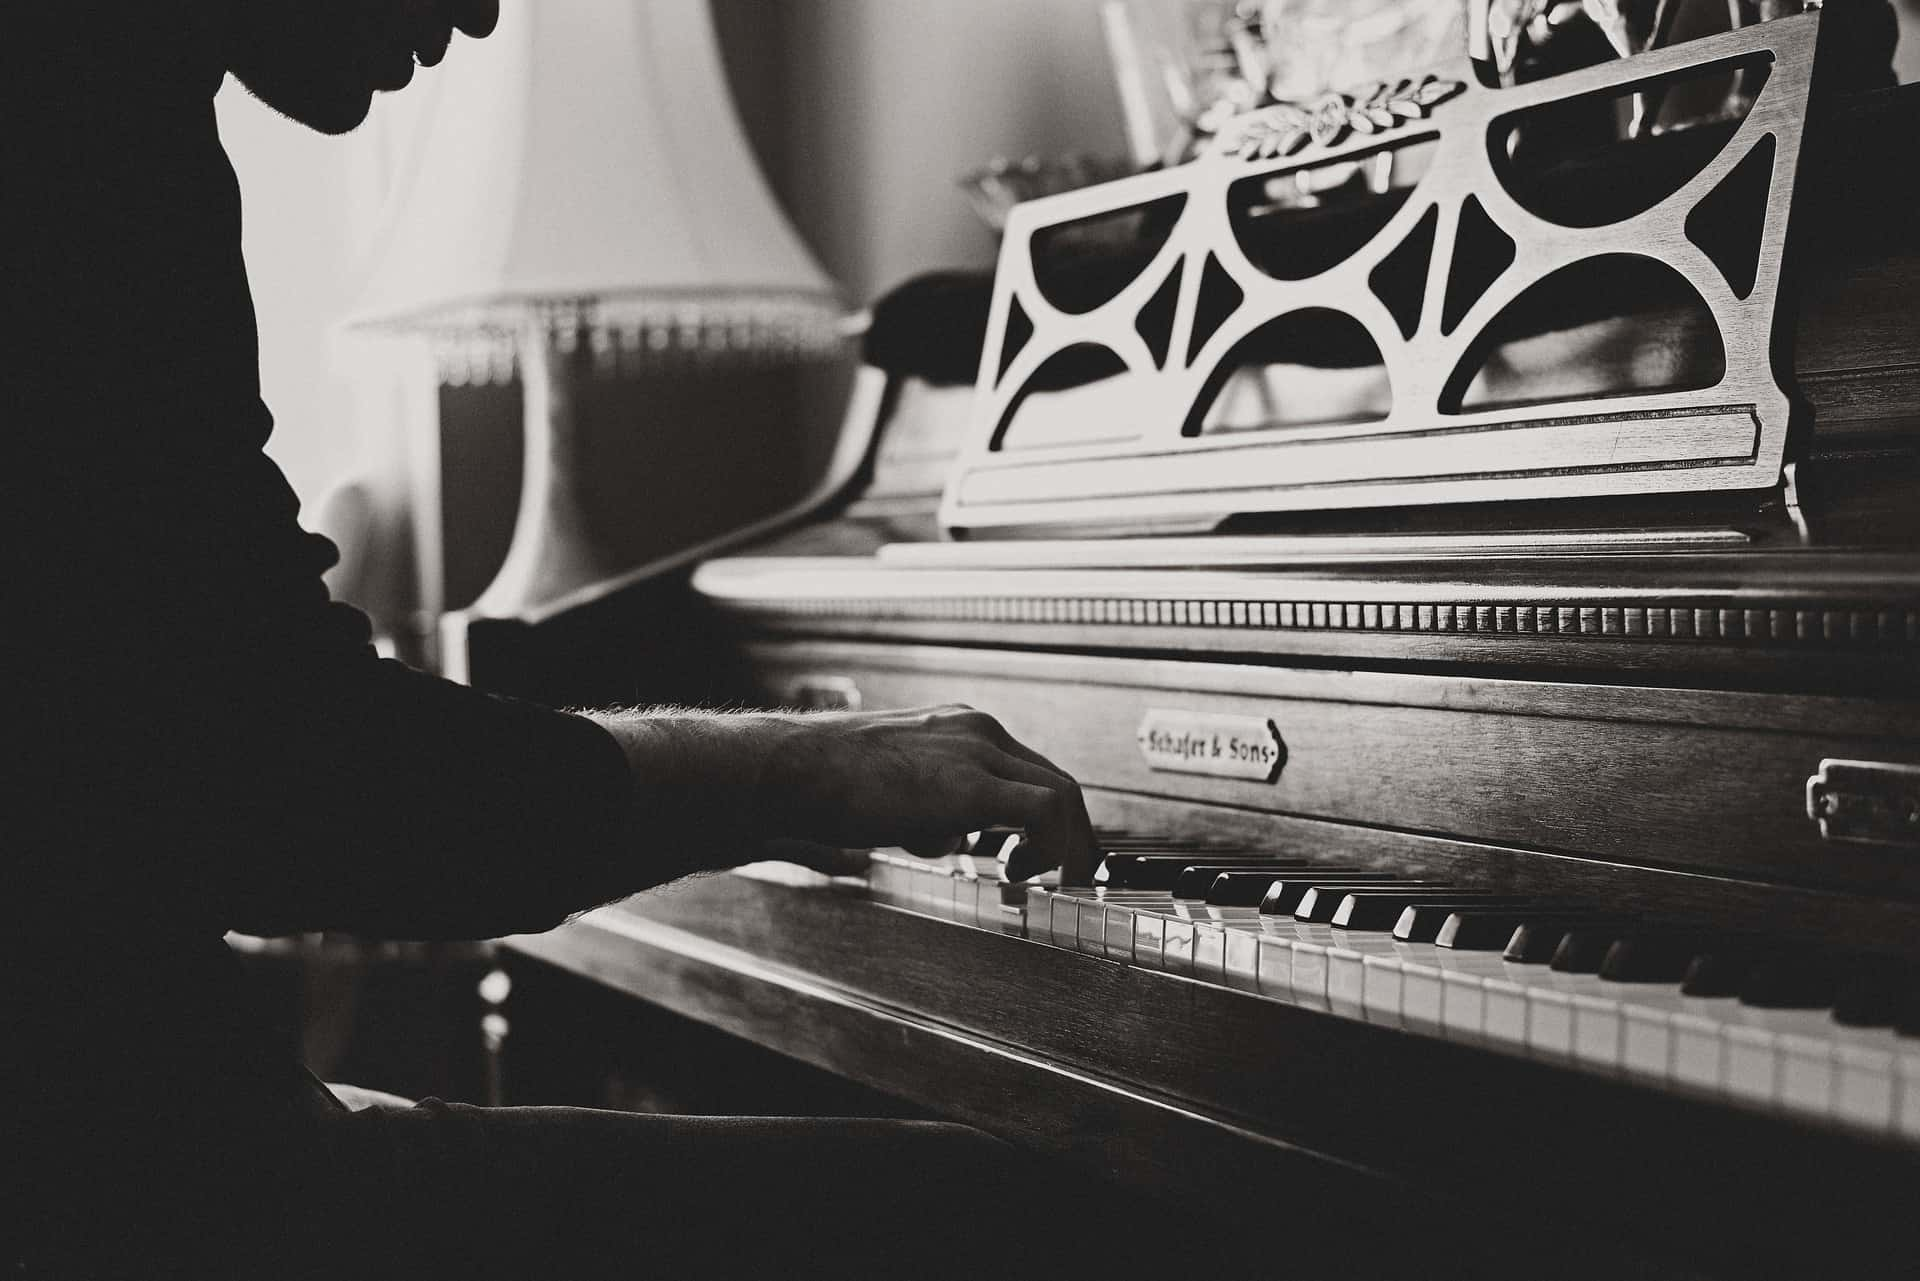 music, learning, musician, pianist, piano, musical